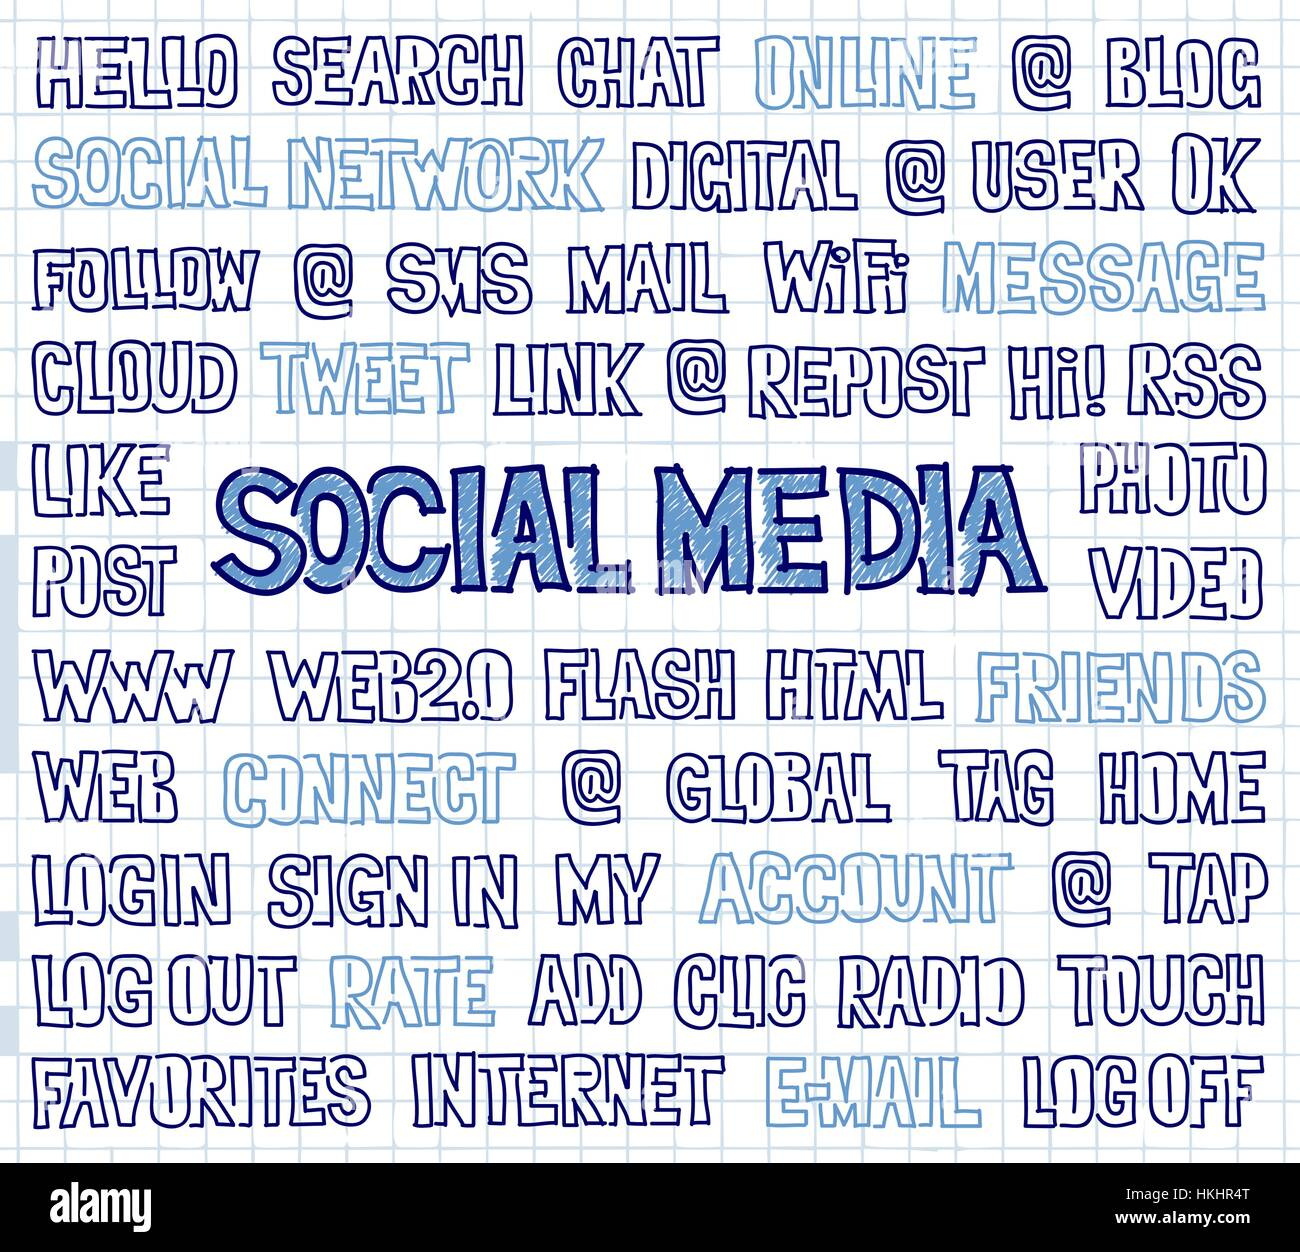 Hand Written Social Media Words, Tags, and Labels on Squared Paper - Stock Image